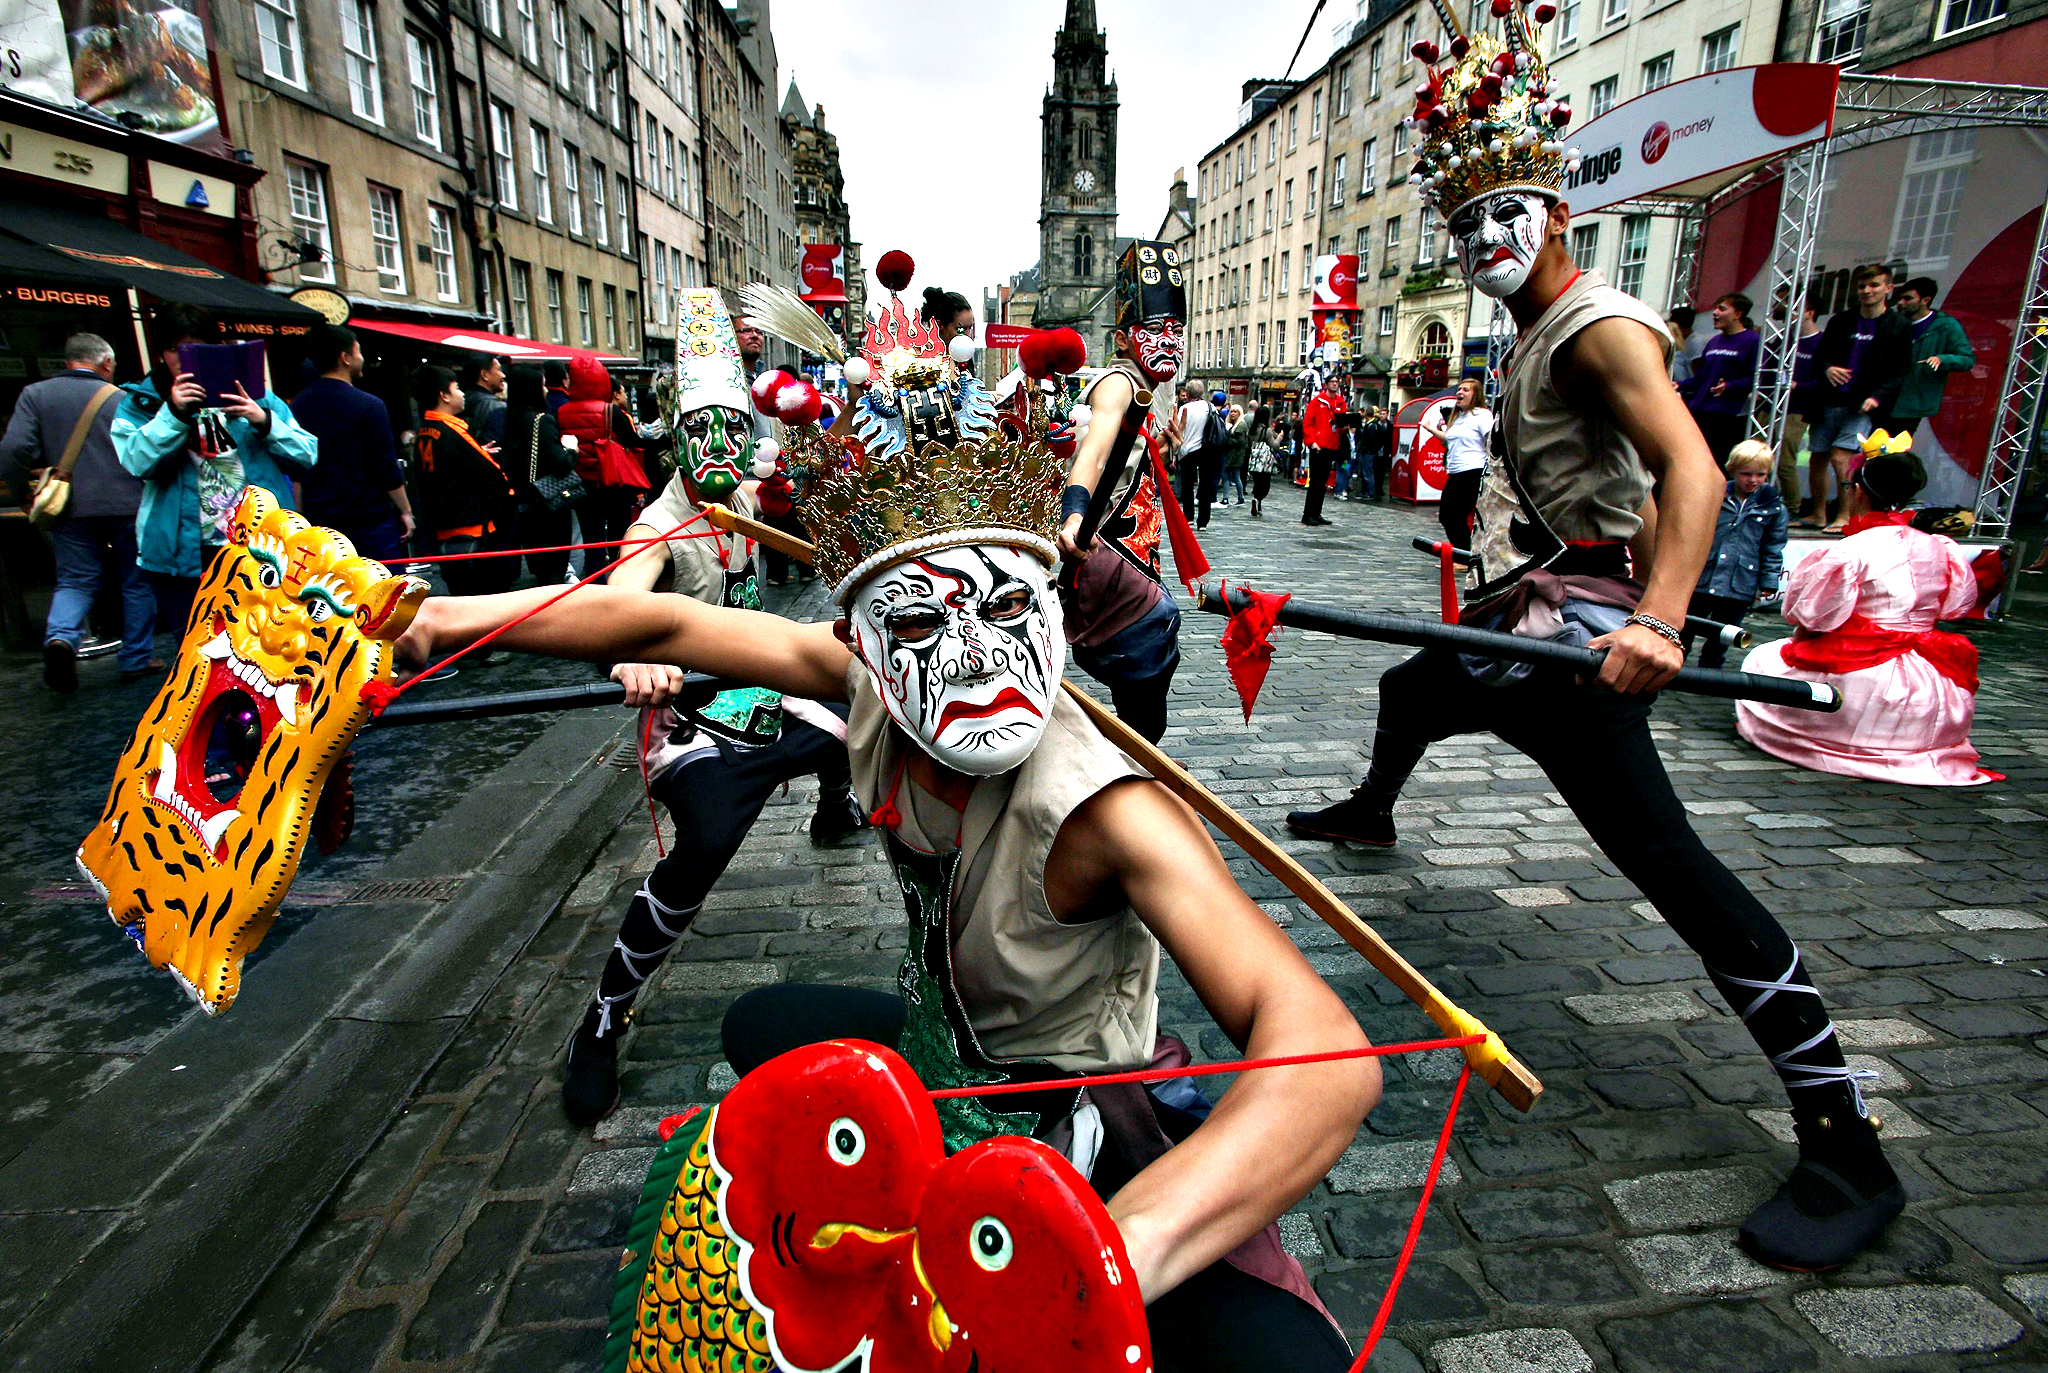 Edinburgh Fringe Festival 2014...Edinburgh Fringe Festival acts